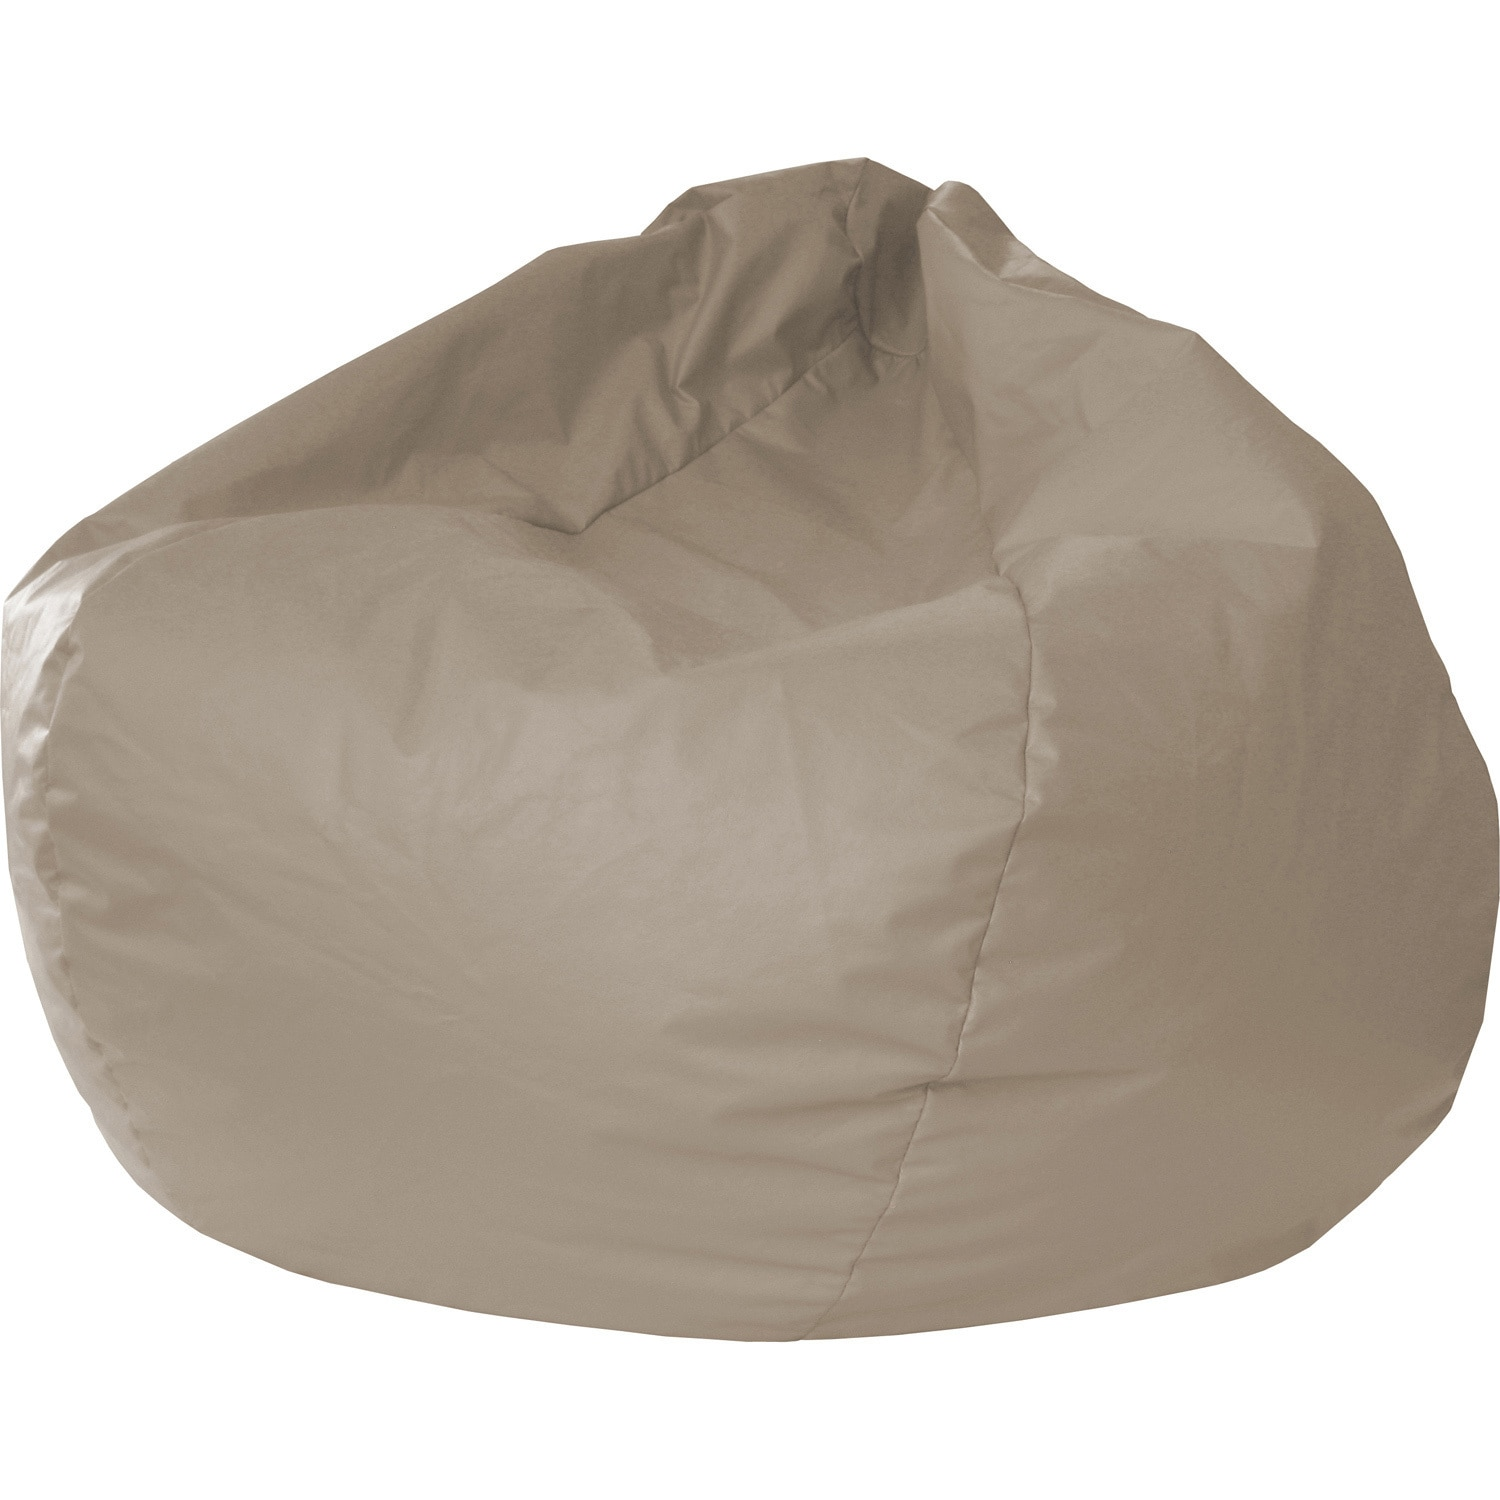 Bean Bags Chair Gold Medal Jumbo Leather Like Vinyl Round Bean Bag Chair